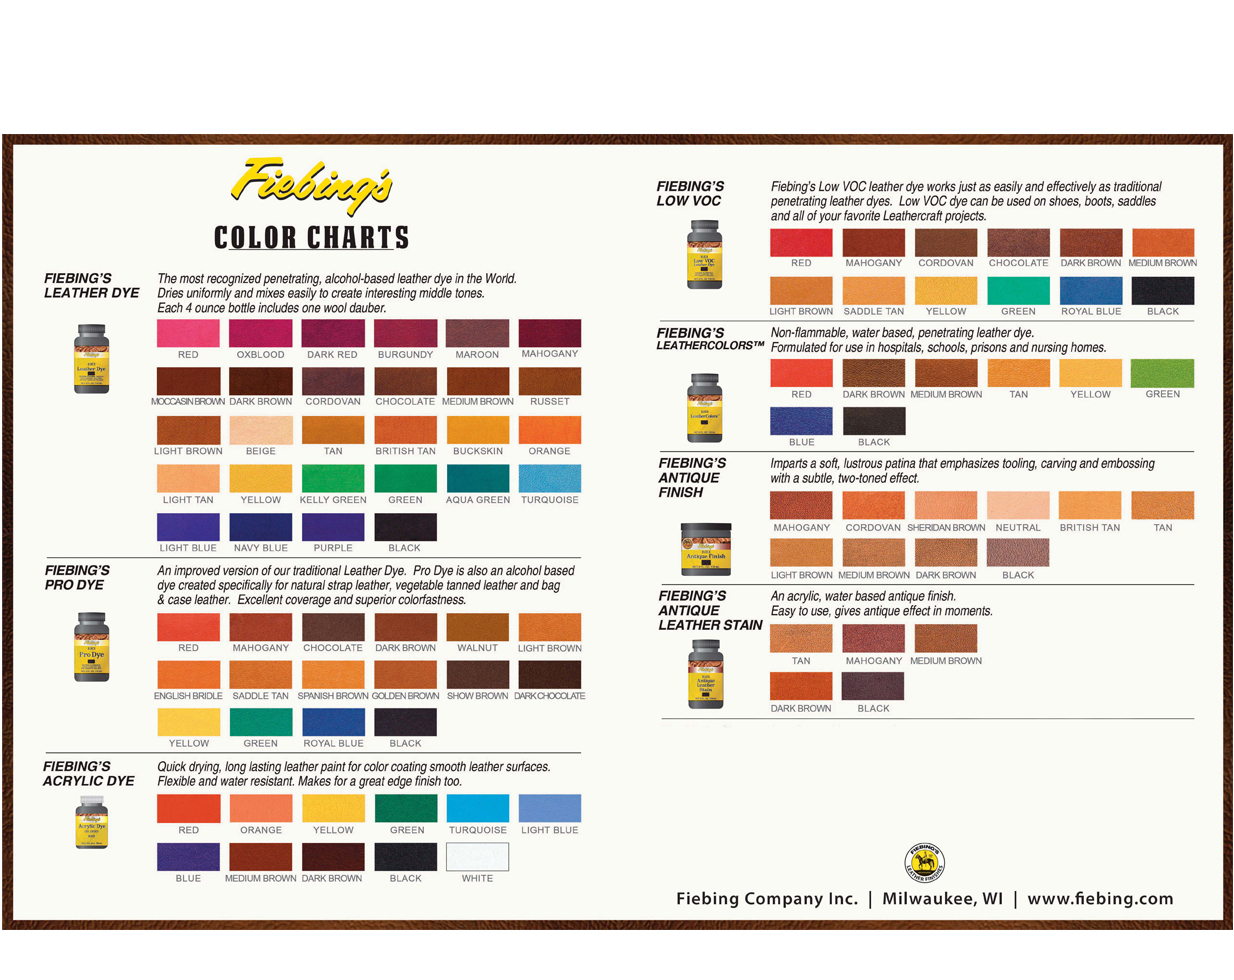 Fiebingcolorchart2012g fiebing leather dye color chart geenschuldenfo Image collections